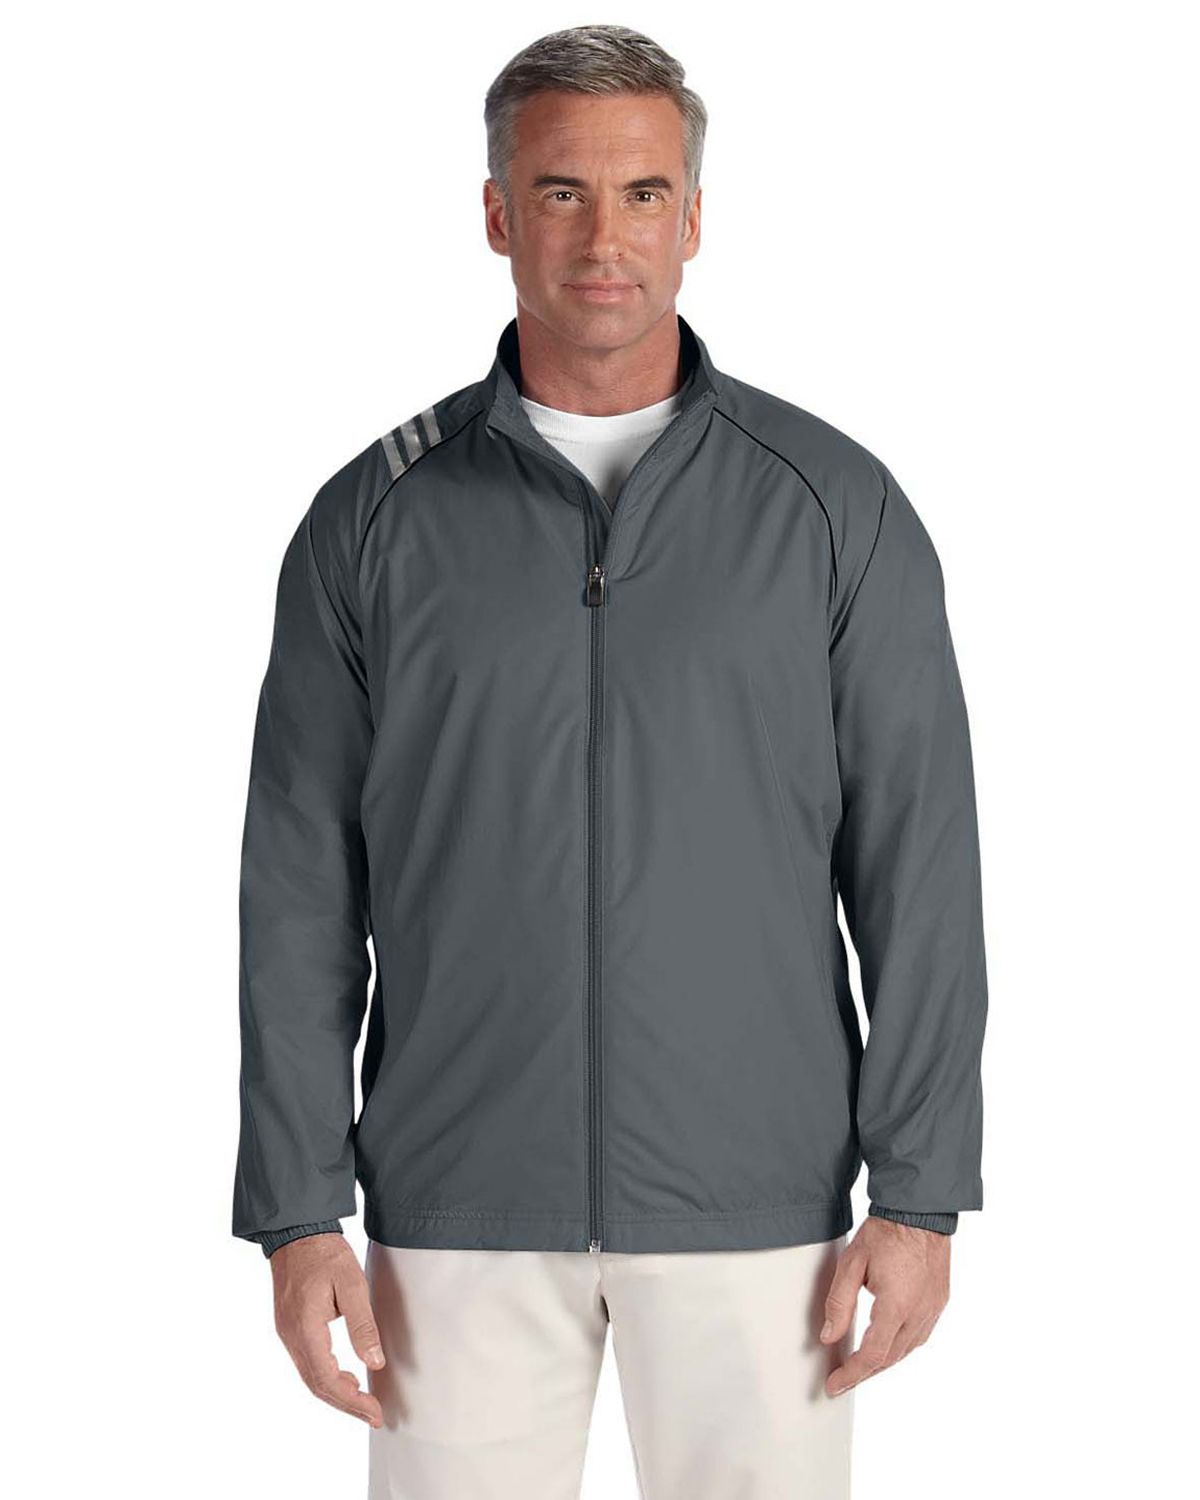 Adidas Golf A169 Men's Jacket